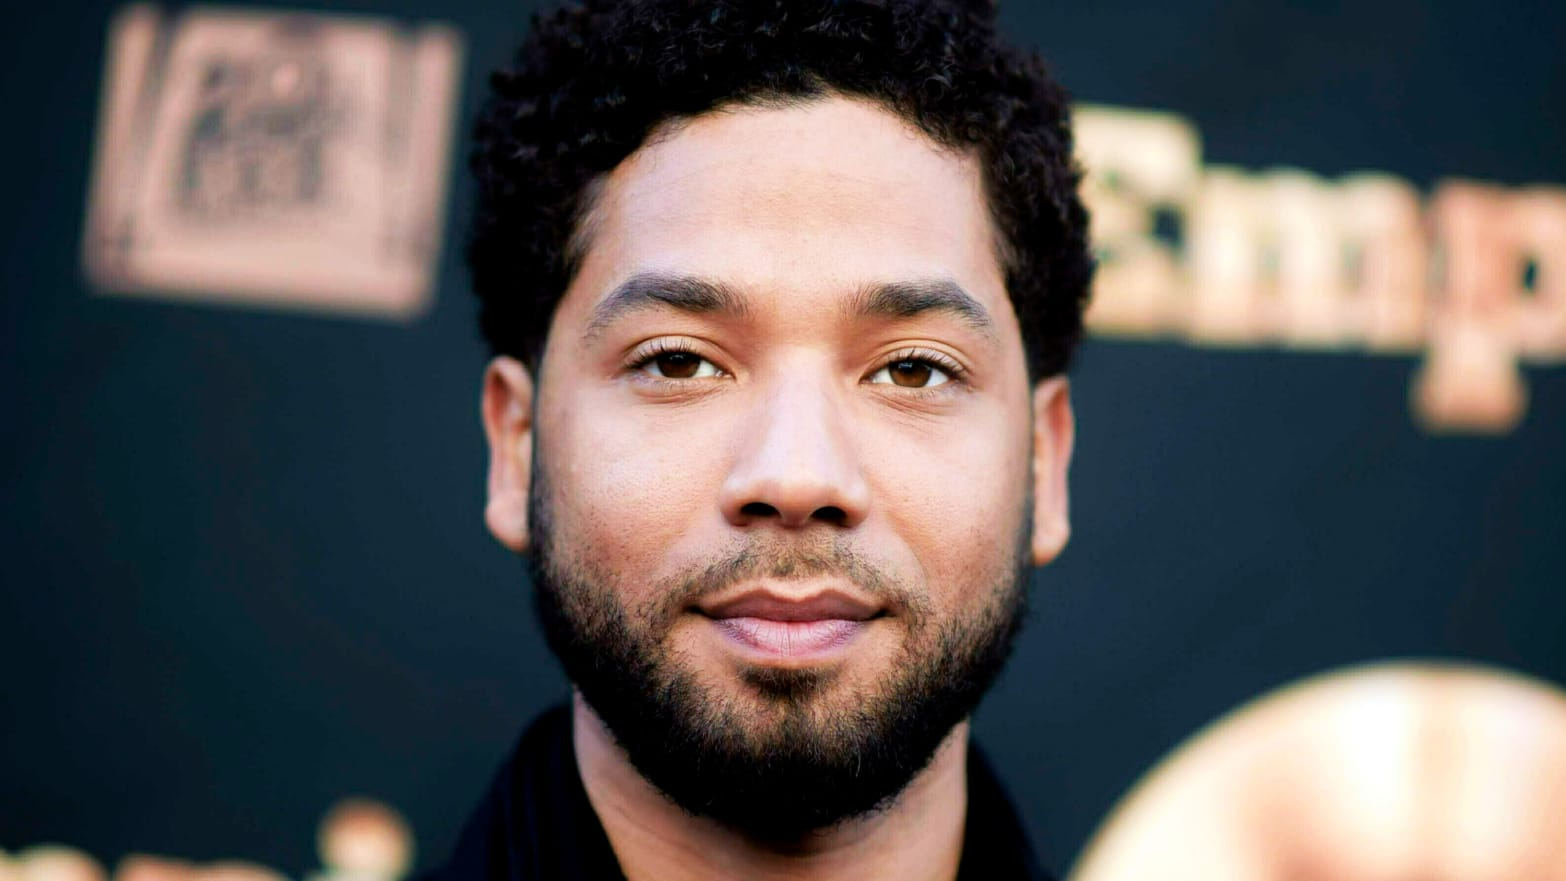 Report: Jussie Smollett Staged Attack After Racist Letter Didn't Get 'Bigger Reaction'